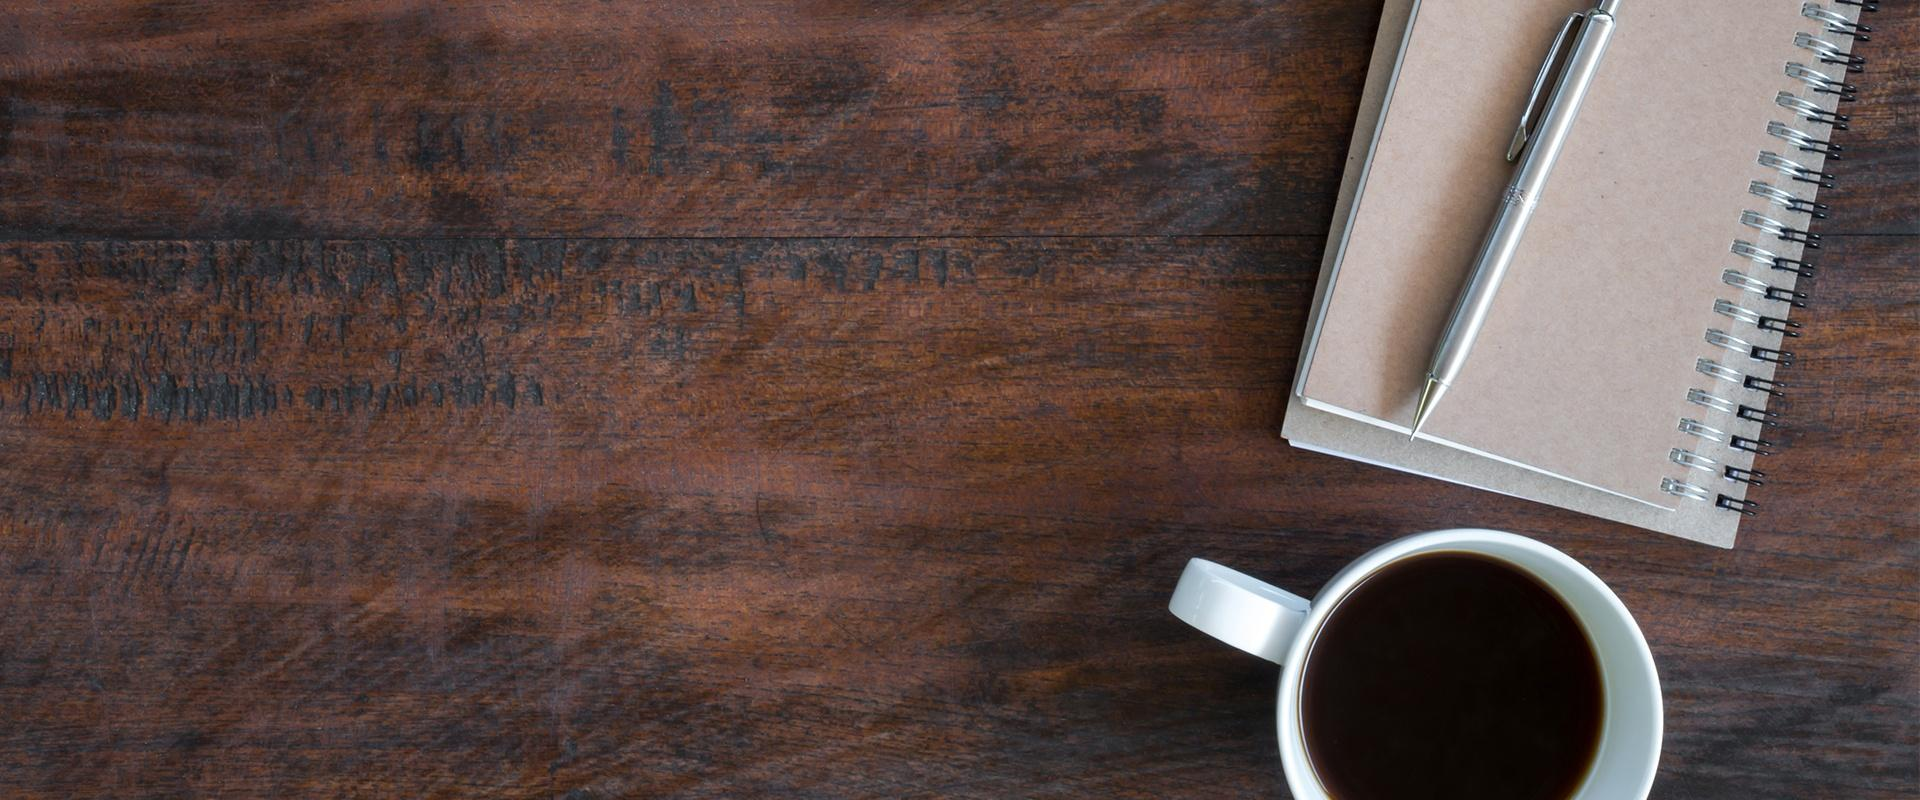 coffee cup on a wooden desk